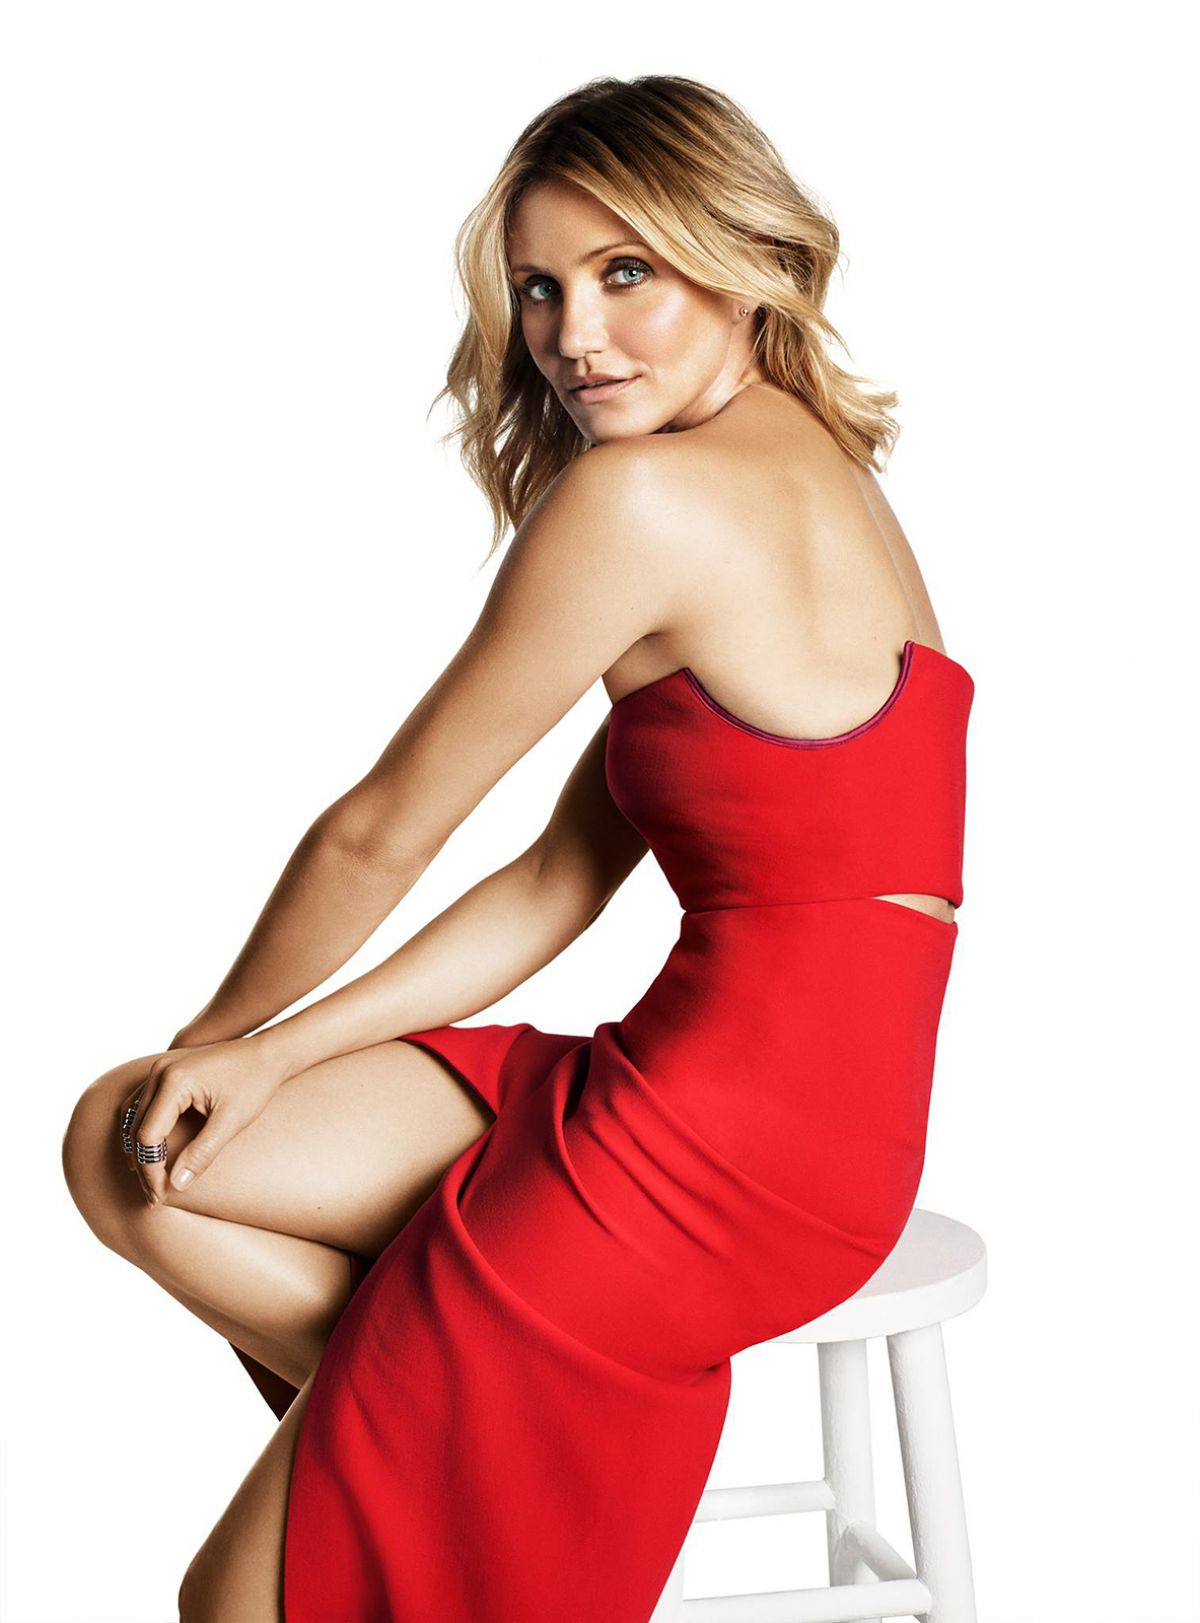 CAMERON DIAZ in Marie Vlaire Magazine, November 2014 Issue